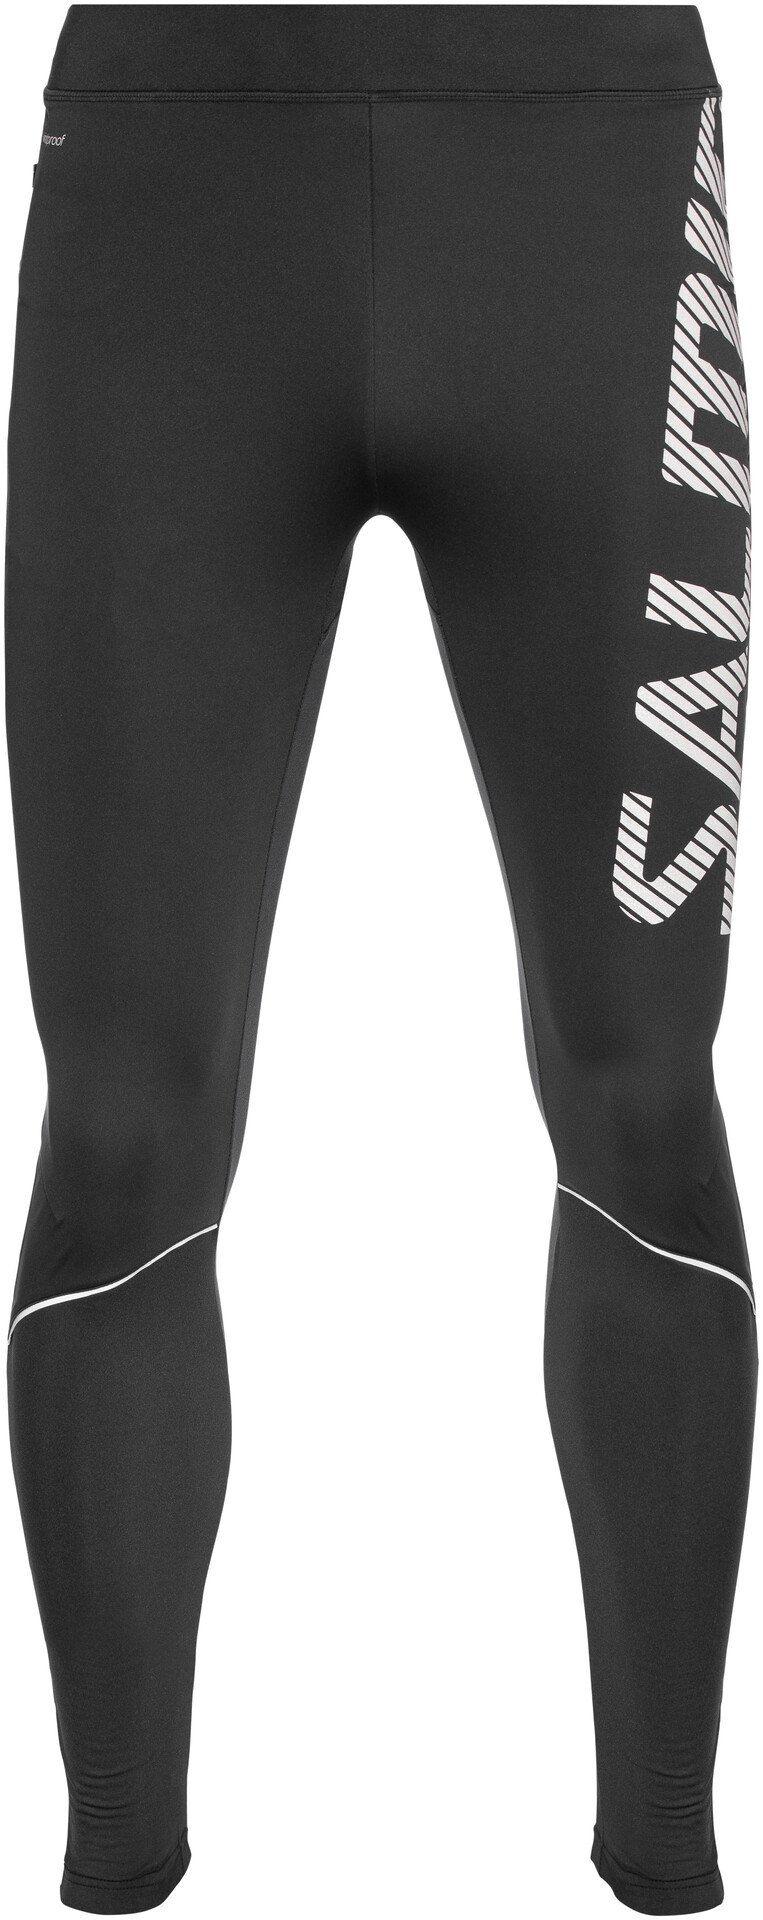 Salomon Herren Tights Pulse Warm Tight M